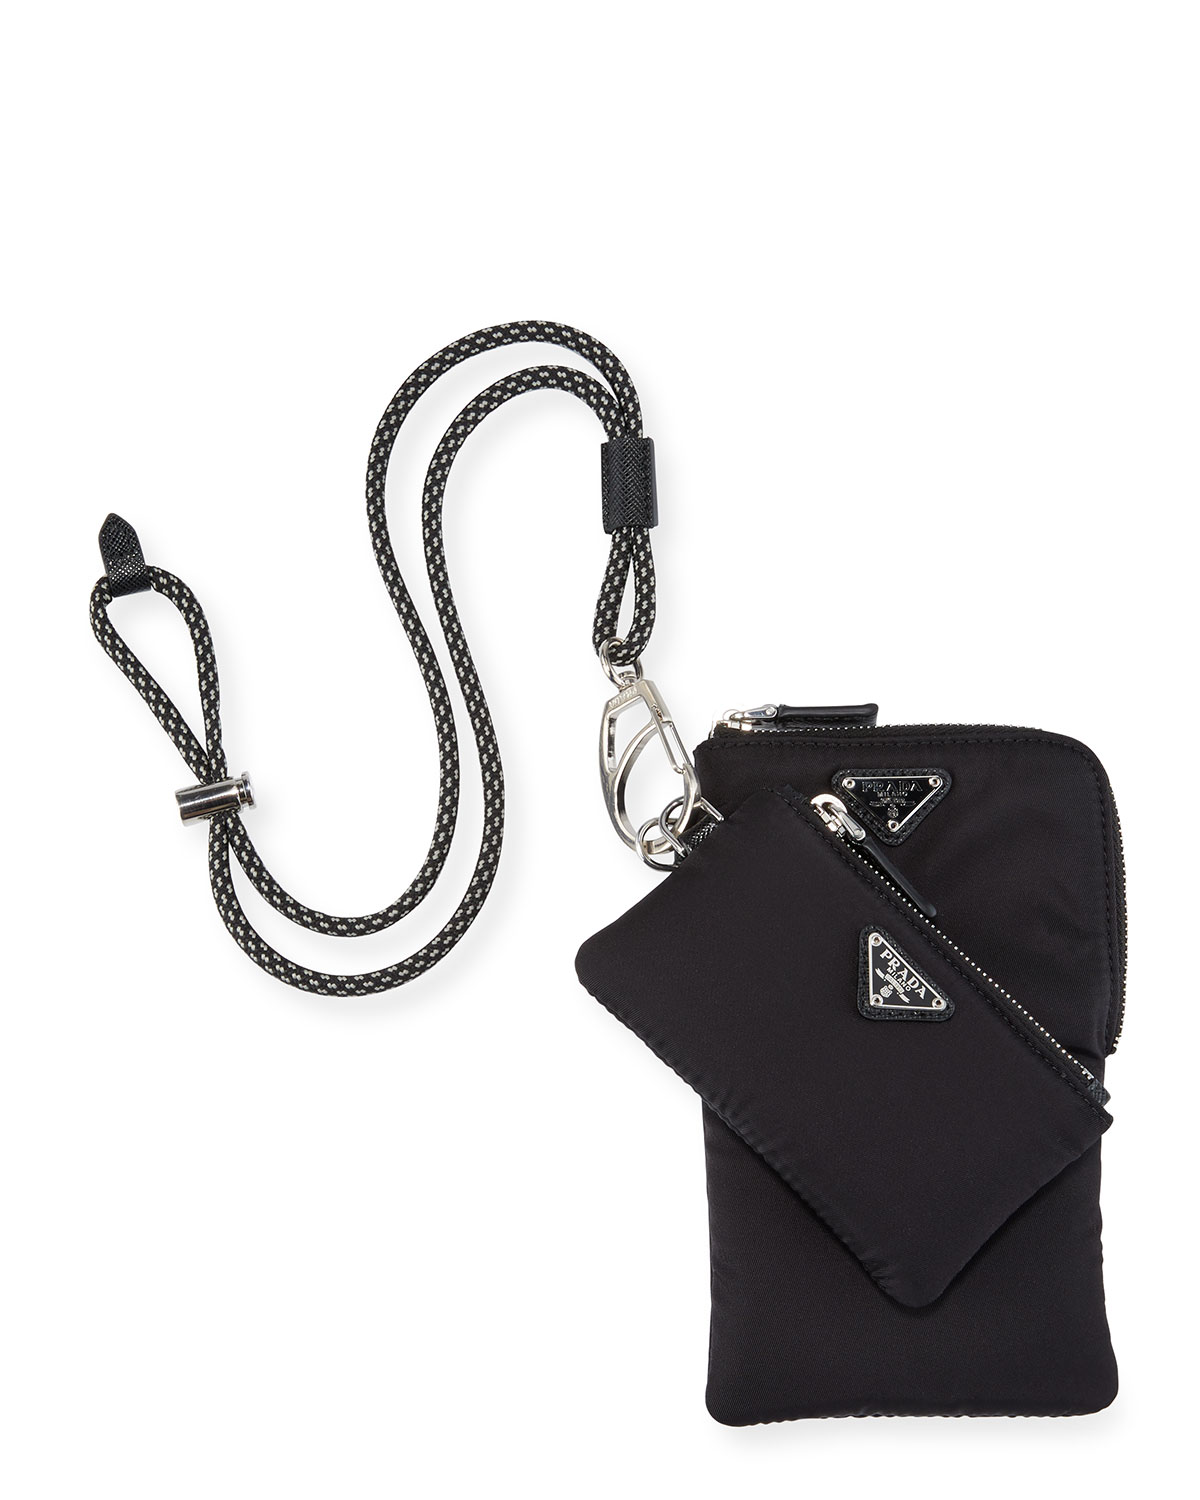 Prada Accessories MEN'S TWO-POUCH TRICK NECKLACE